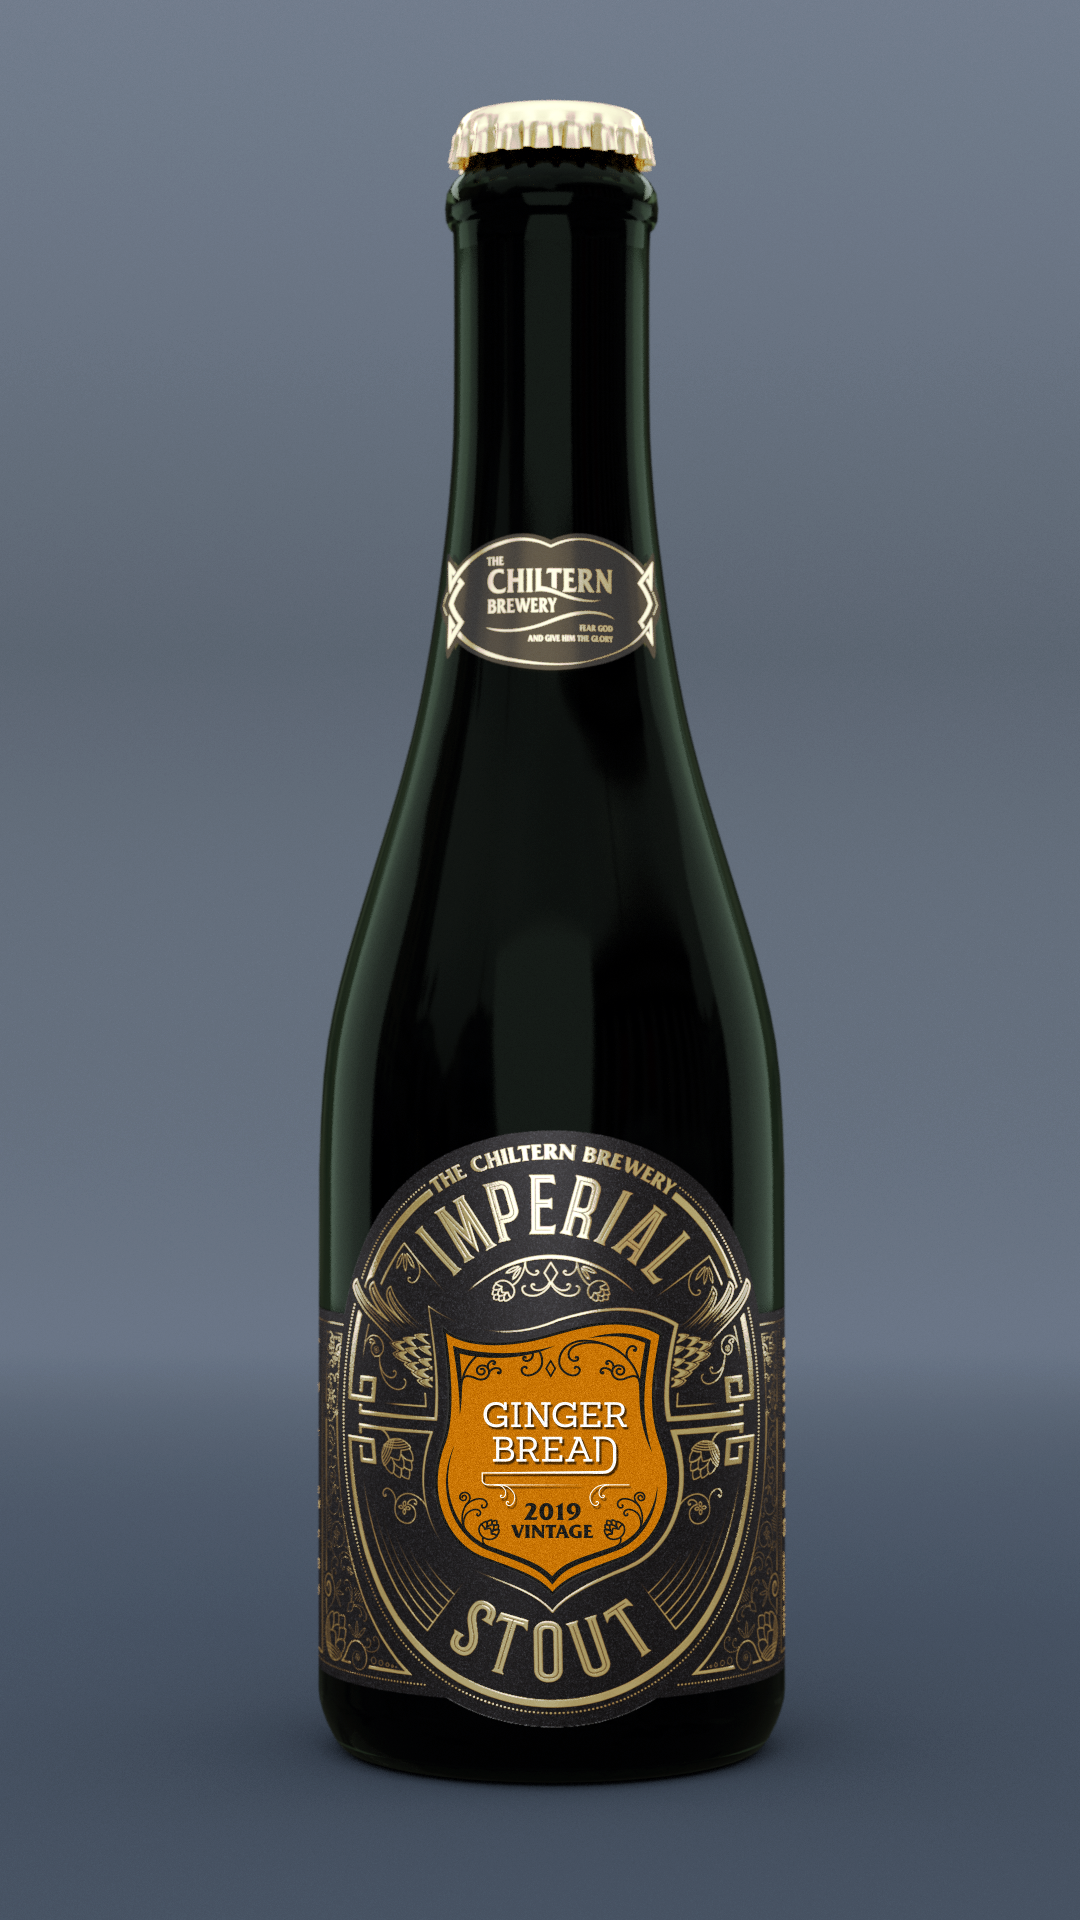 Imperial Stout 2019 Vintage – Gingerbread